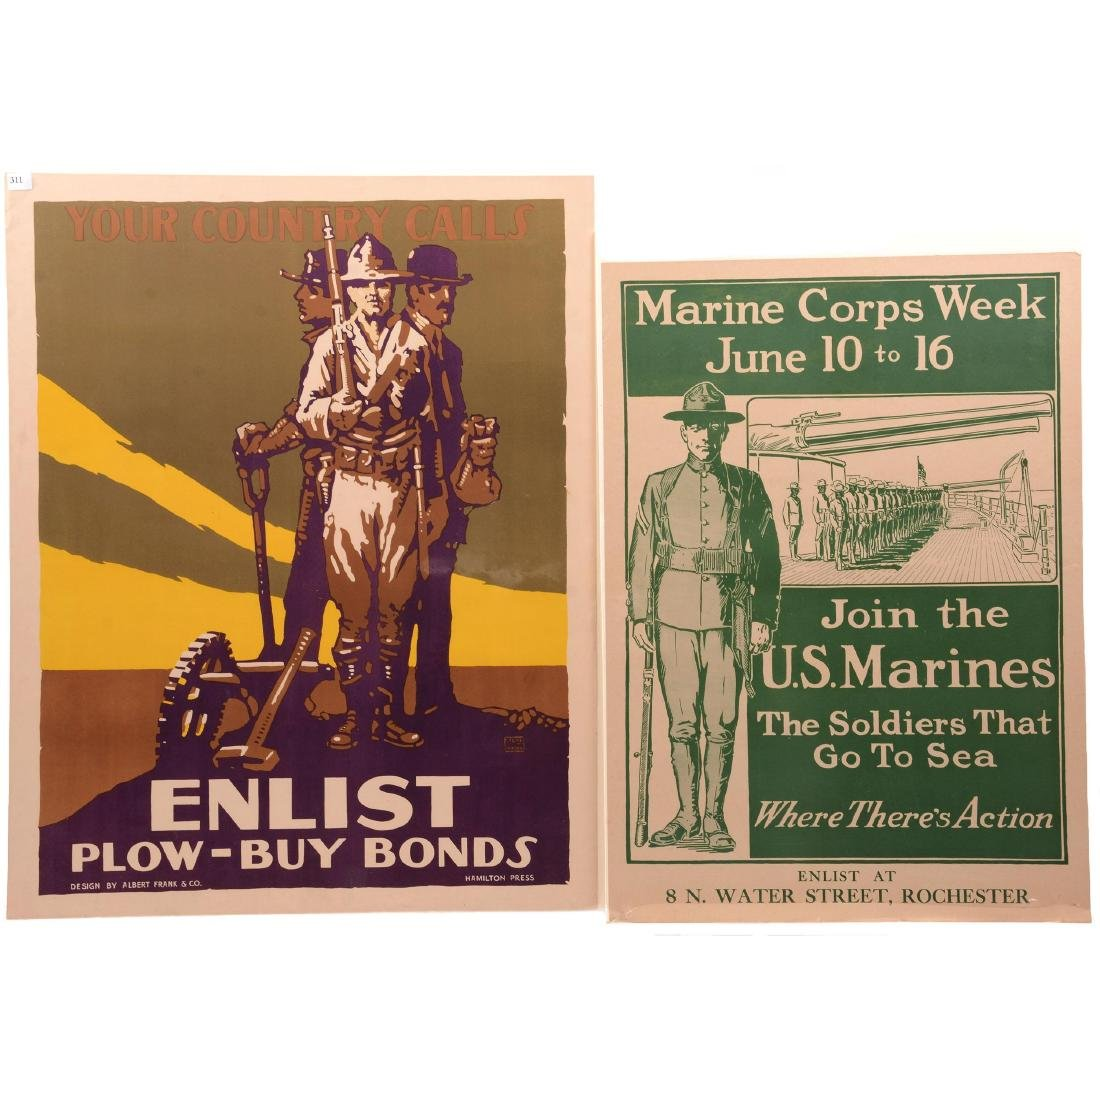 Two Vintage World War I Propaganda Posters